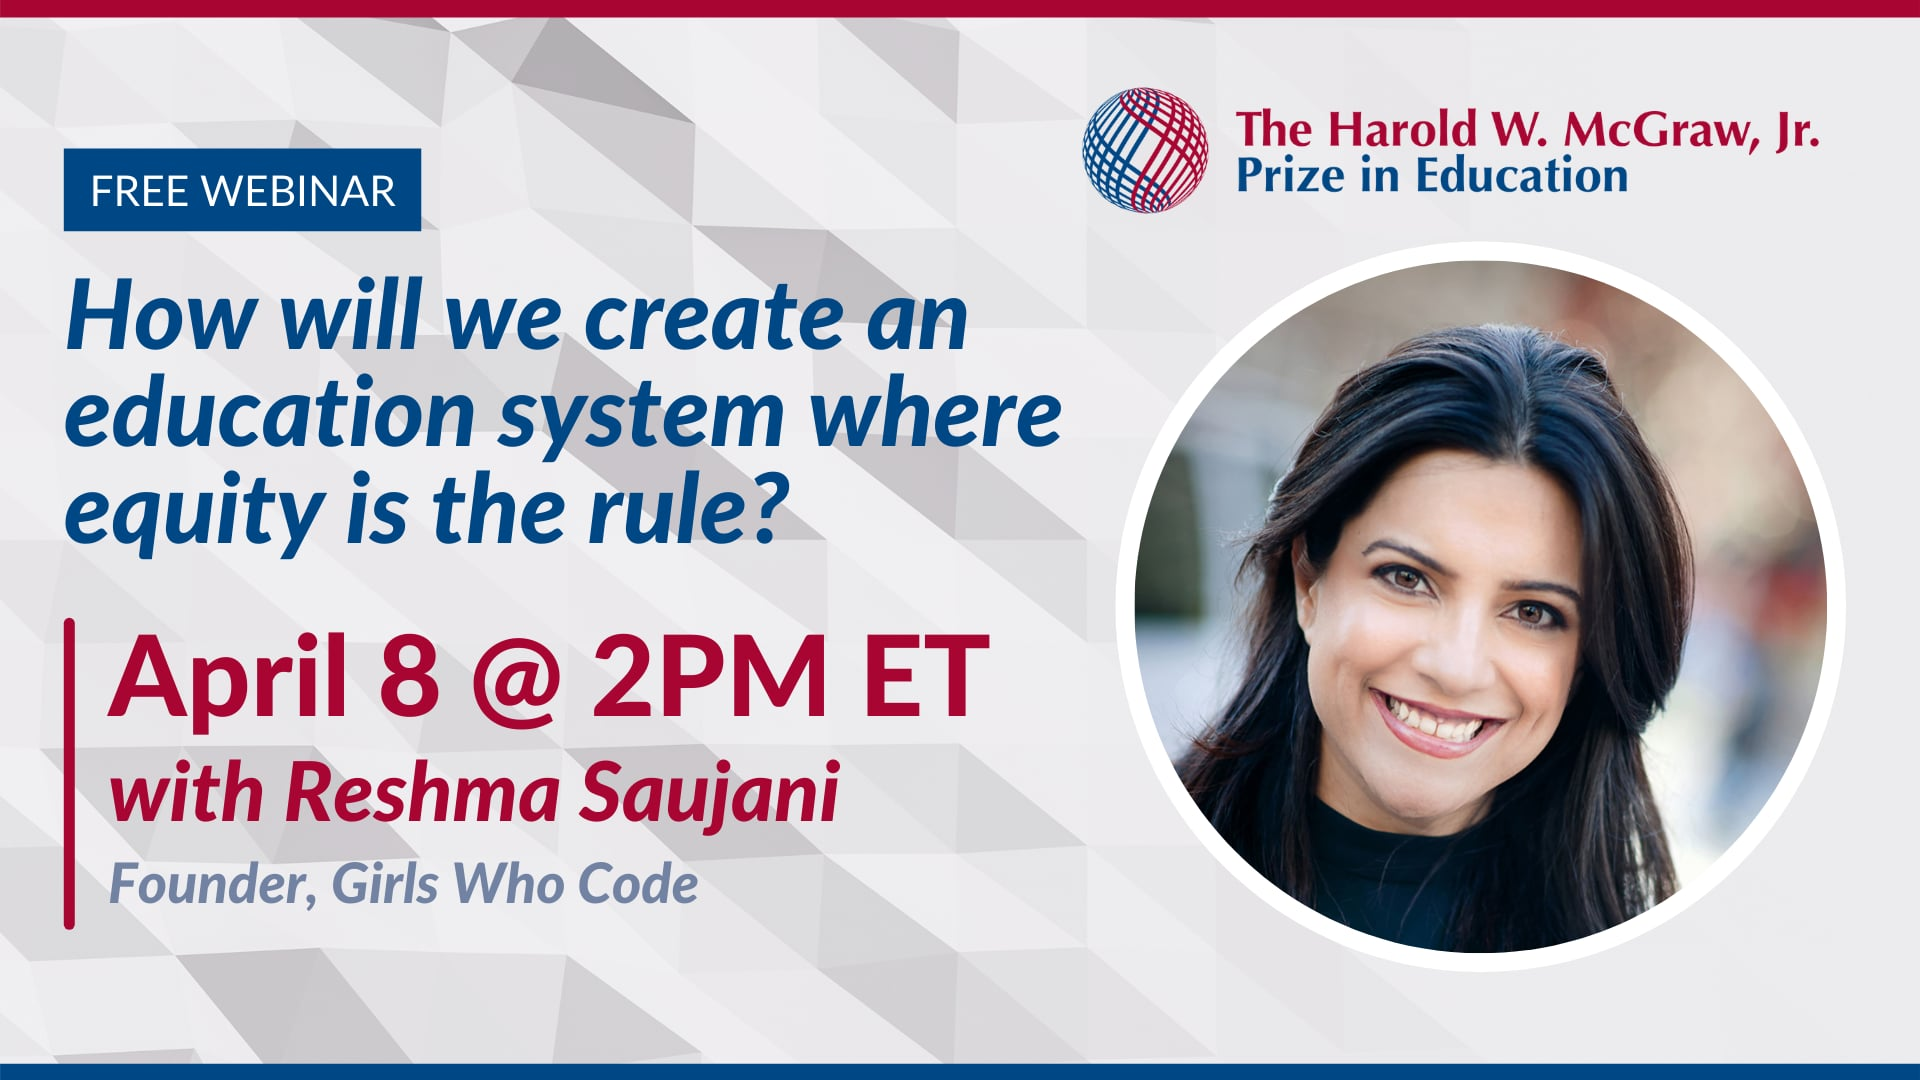 Play video: How will we create an education system where equity is the rule?